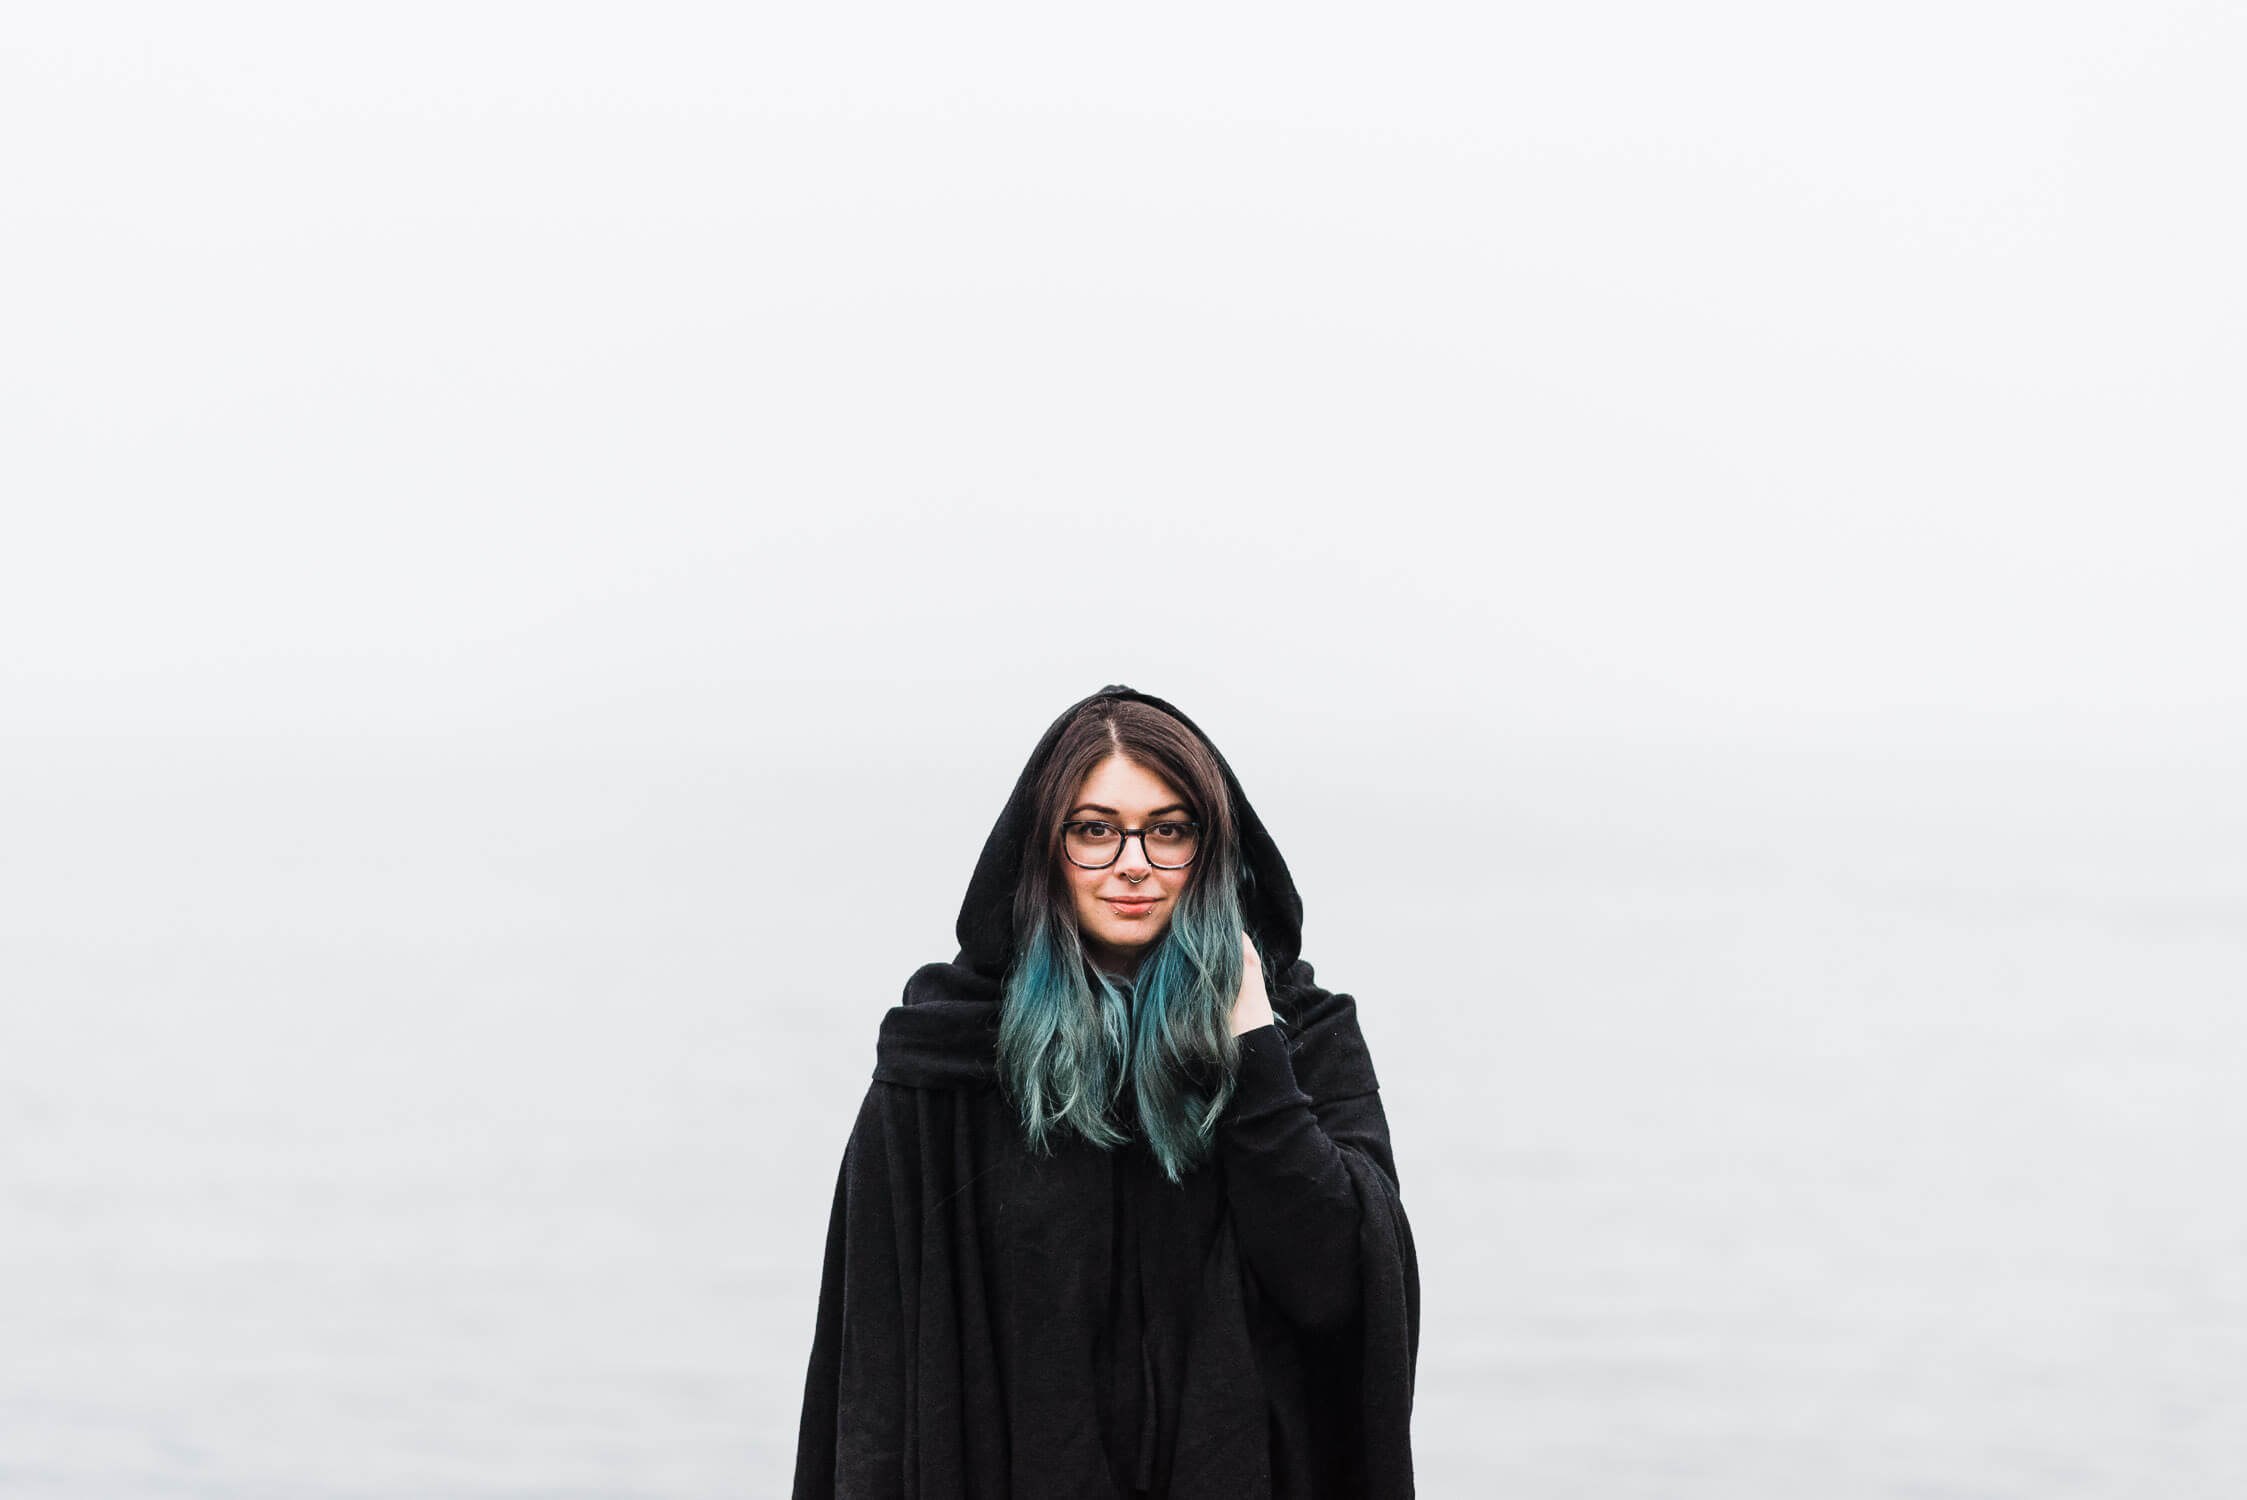 Blue haired woman wearing black cape standing on the foggy coastline of Dartmouth, Nova Scotia